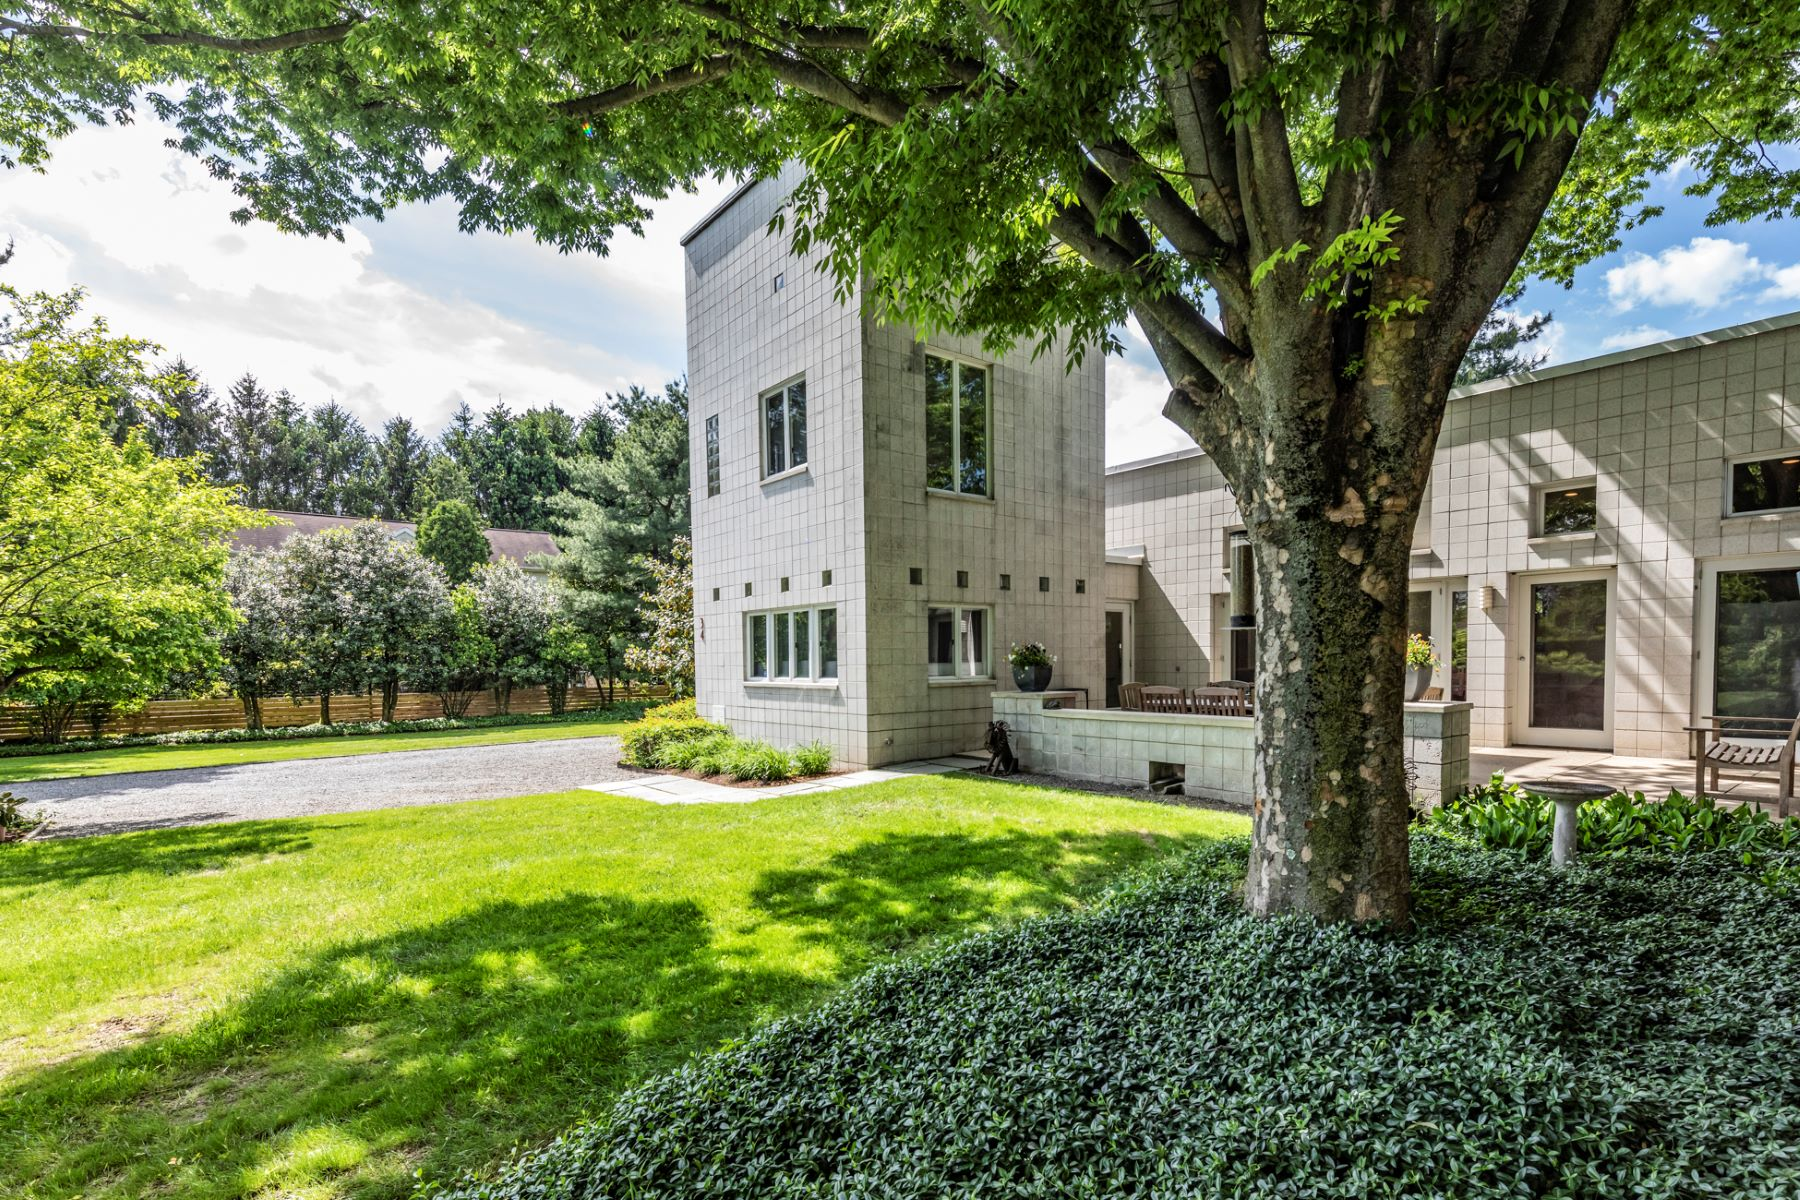 Additional photo for property listing at Award-Winning Masterpiece by Olcott + Schliemann 34 Oakland Street, Princeton, New Jersey 08540 United States